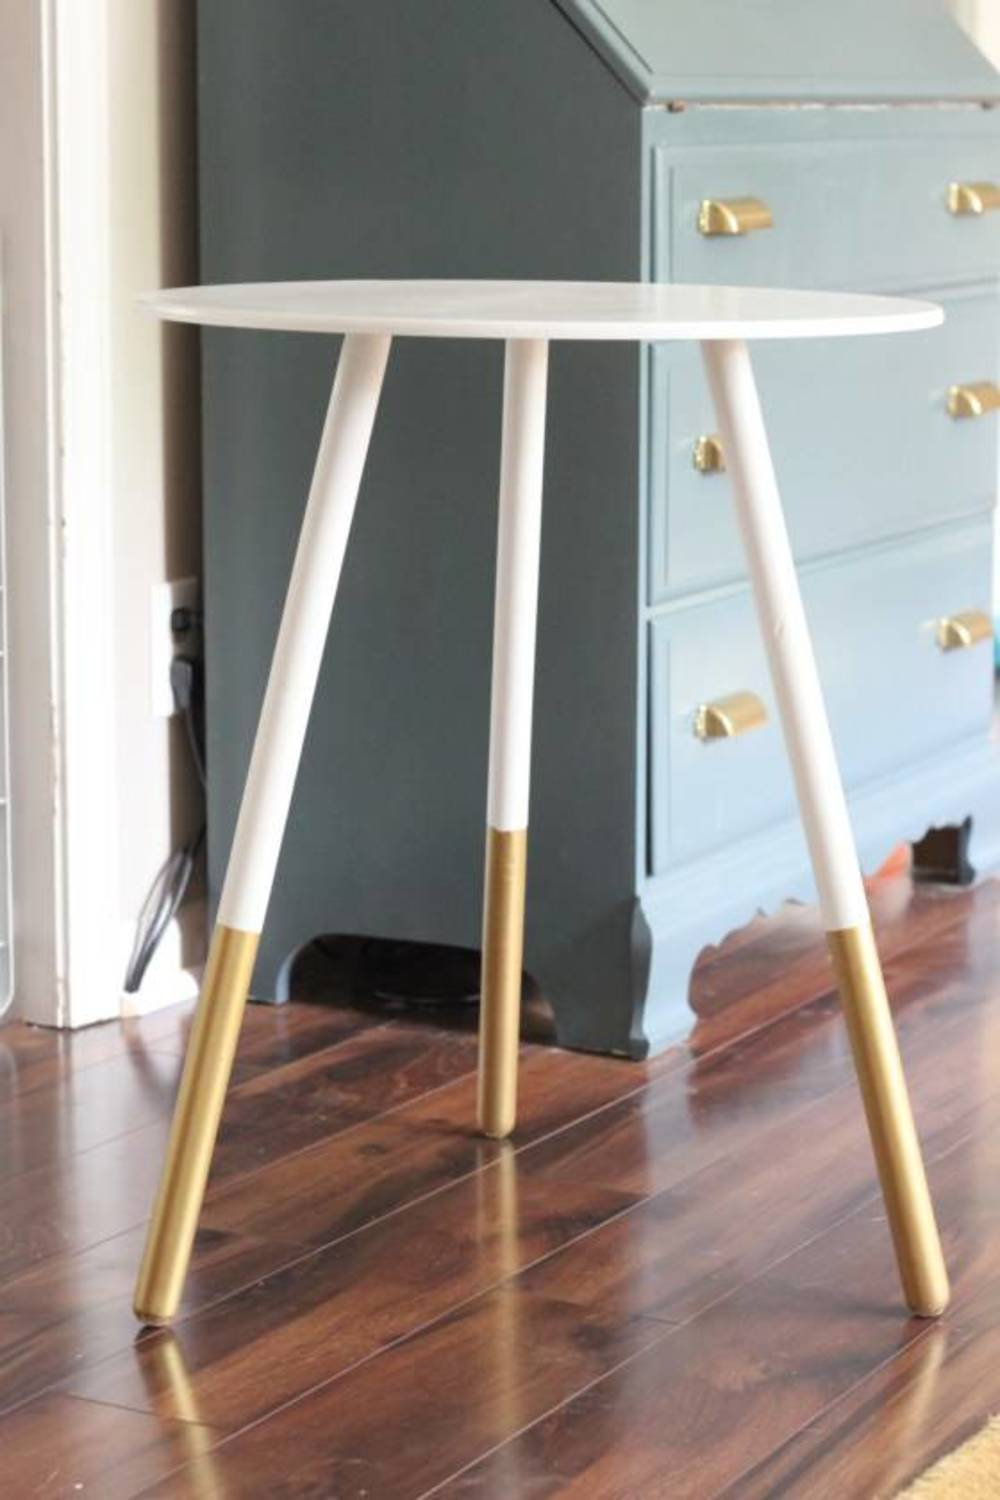 amazing west elm hacks for your home blitsy accent table all could use why not whip this inspired dipped leg side via chasing shiny objects round occasional tables with drawers